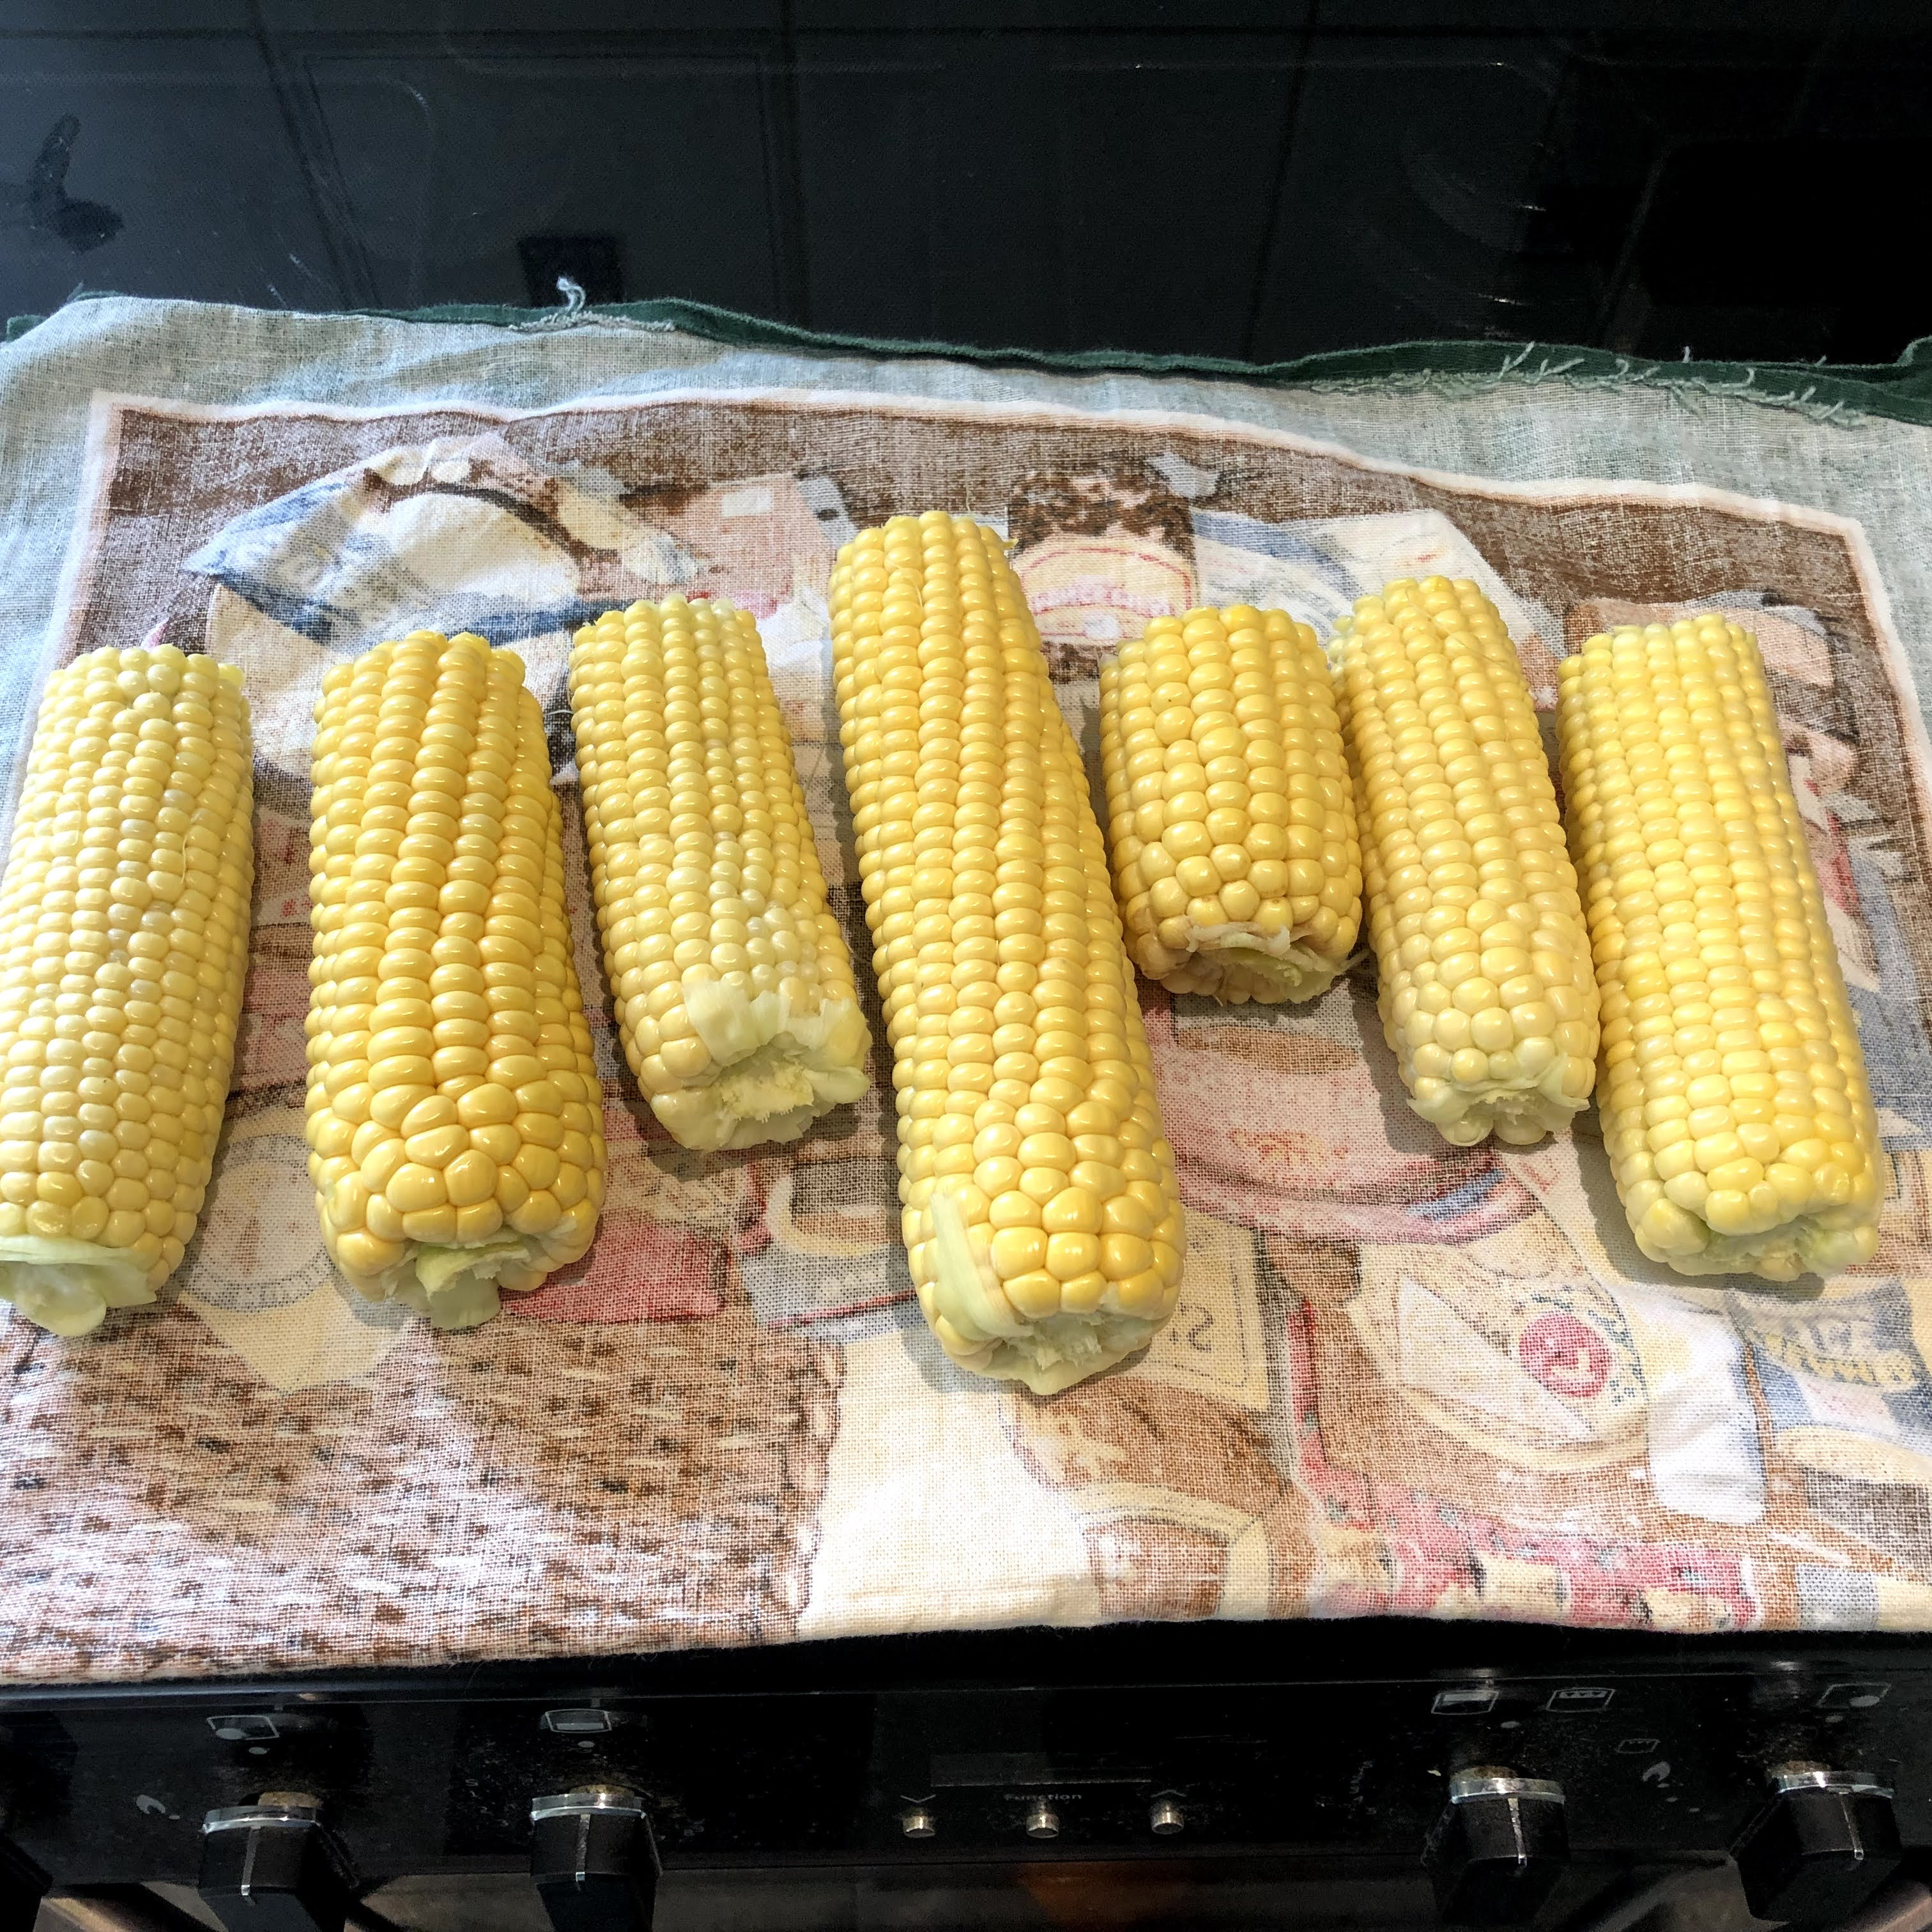 Photograph shows some sweetcorn cobs on a tea towel